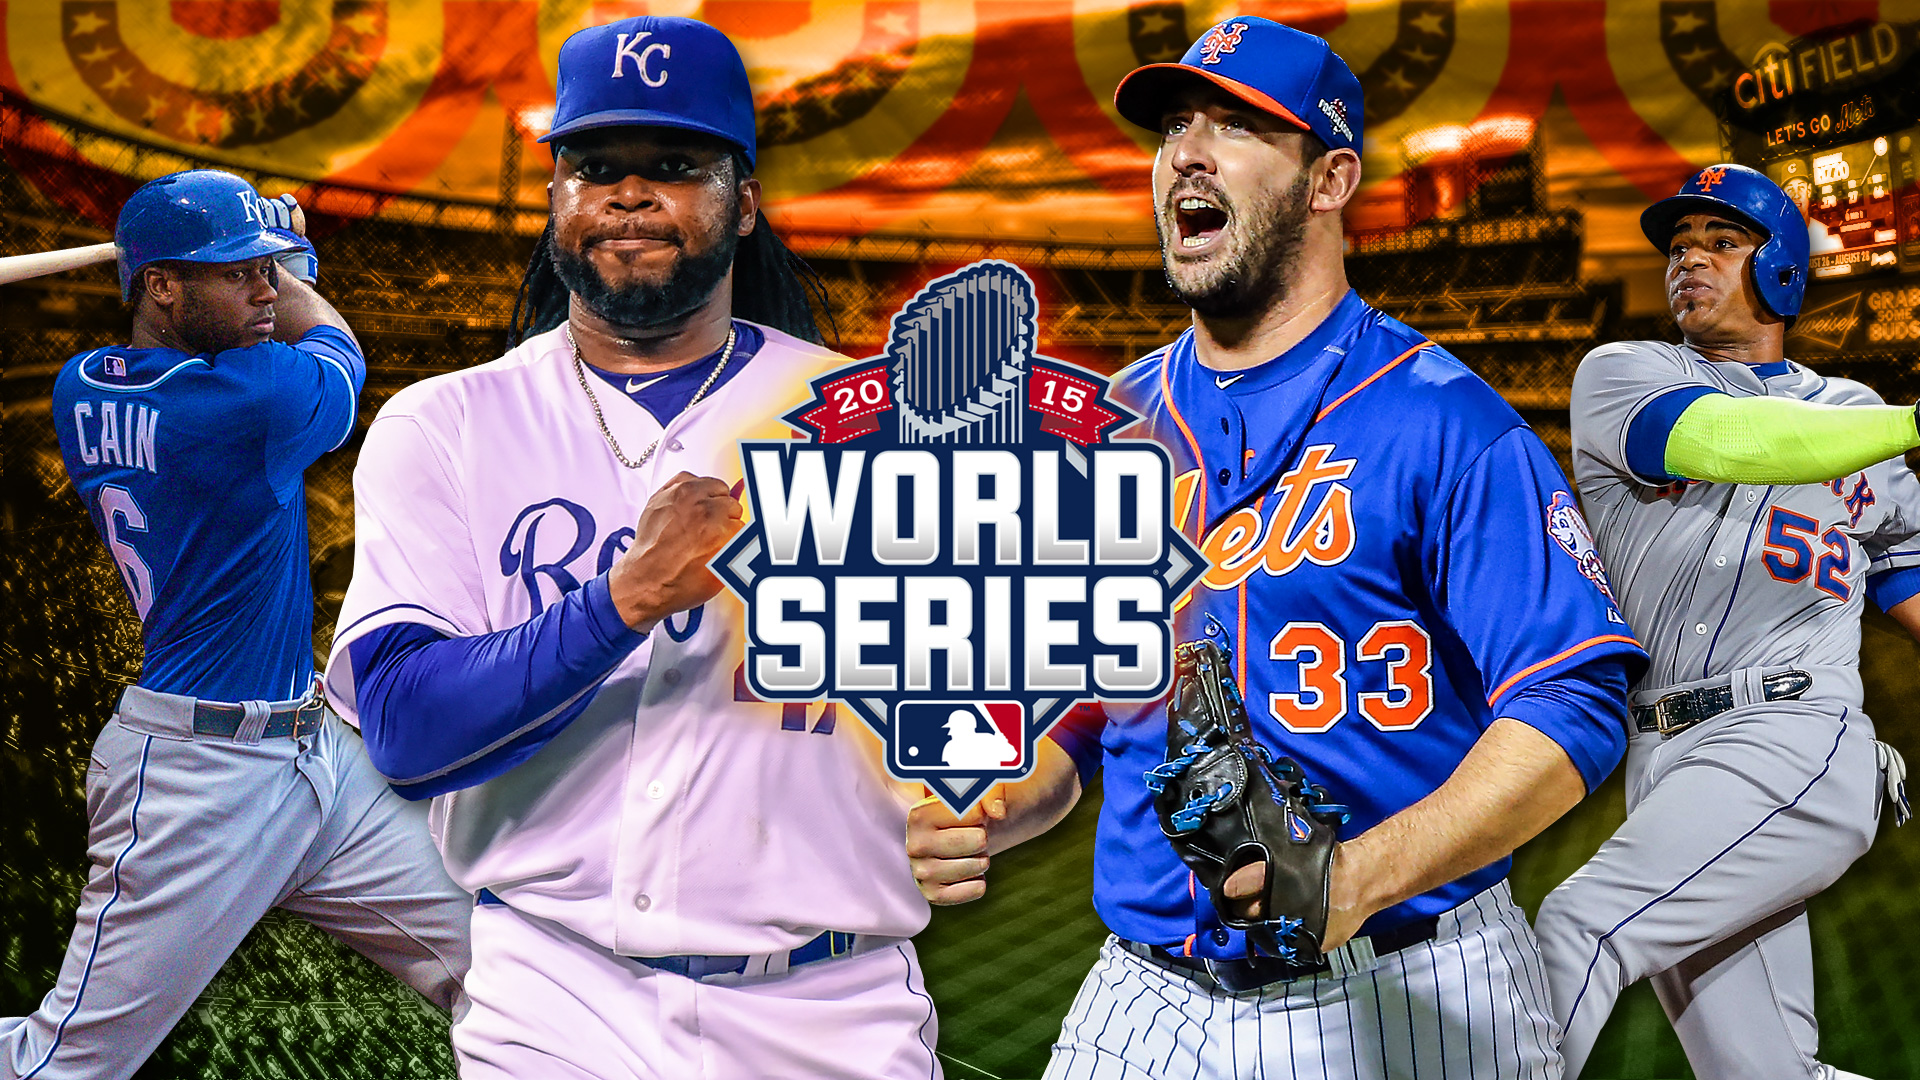 World Series 2015: Royals-Mets TV Schedule, players to watch